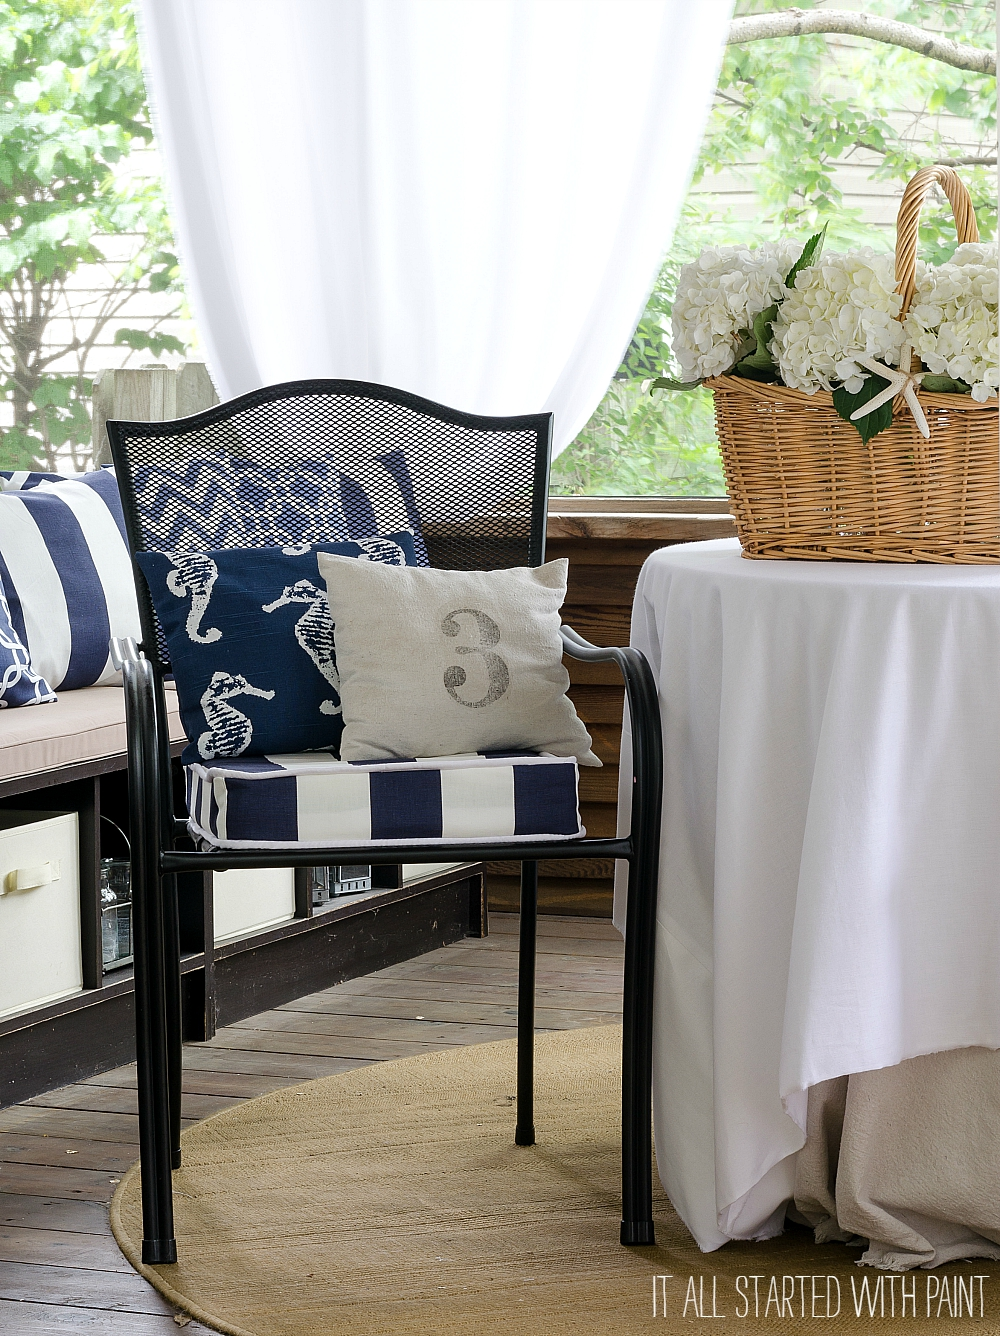 Screen Porch Decorating Ideas in Navy and White